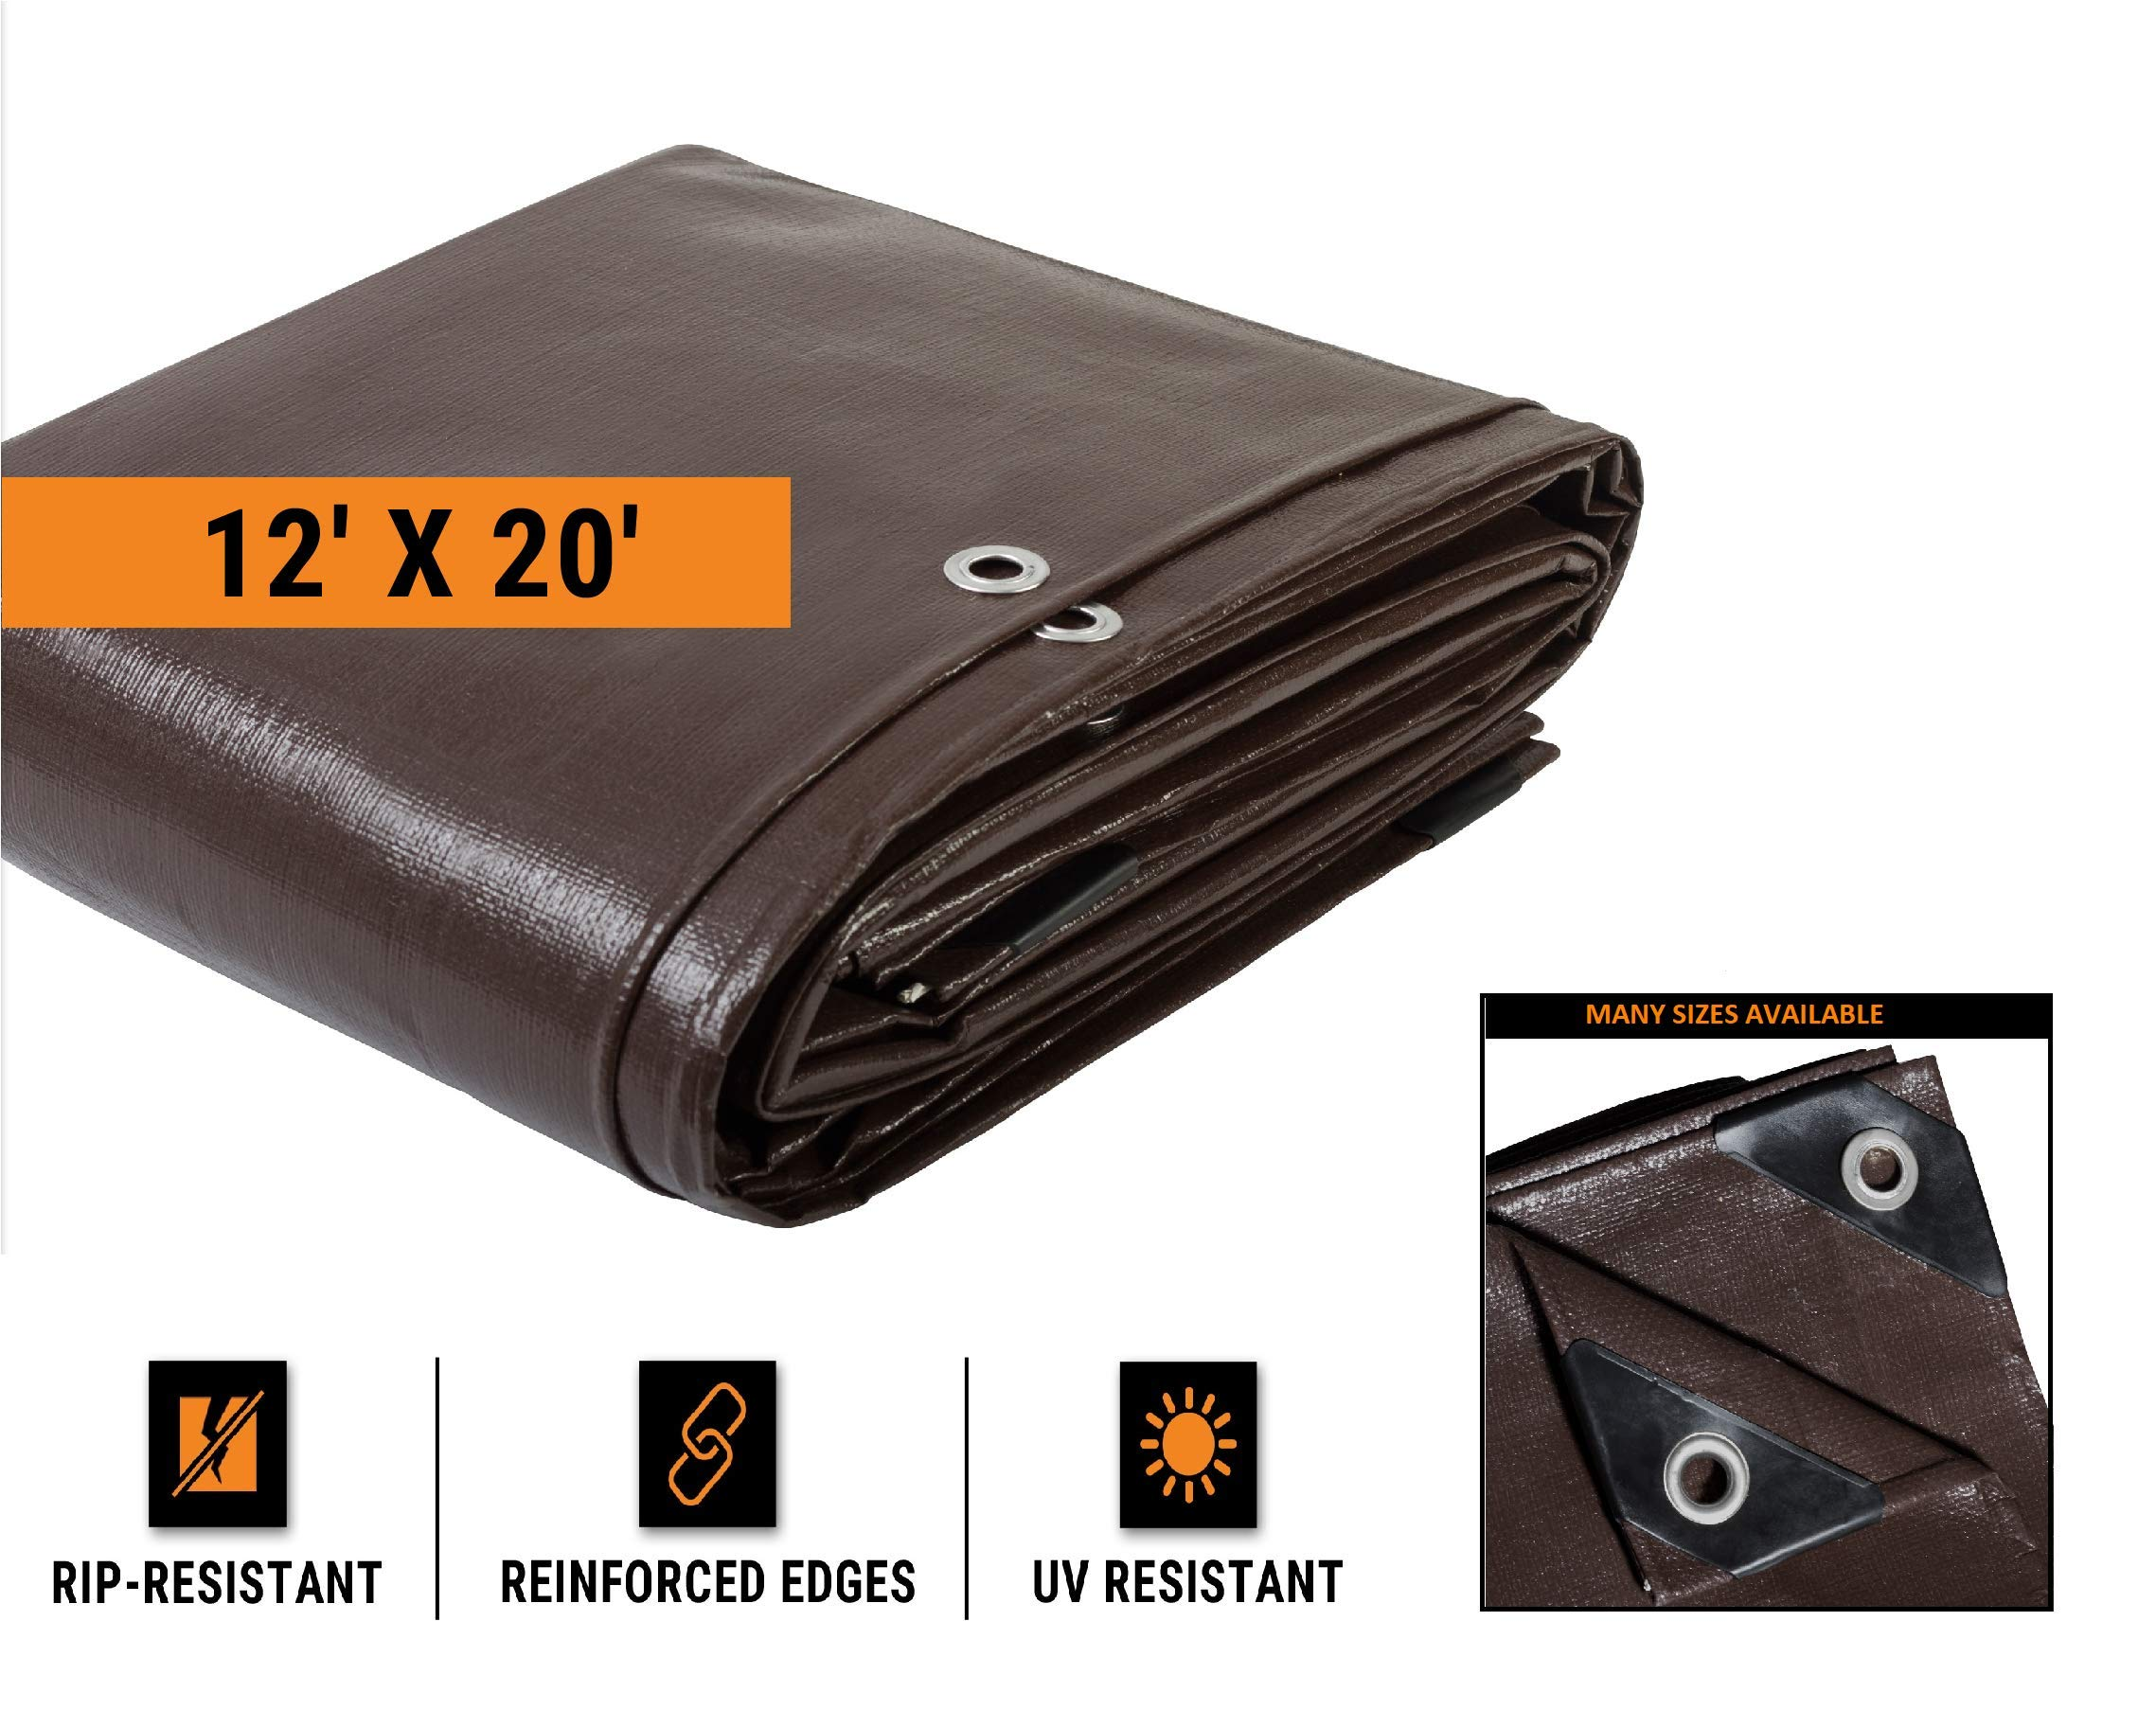 12' x 20' Super Heavy Duty 16 Mil Brown Poly Tarp Cover - Thick Waterproof, UV Resistant, Rot, Rip and Tear Proof Tarpaulin with Grommets and Reinforced Edges - by Xpose Safety